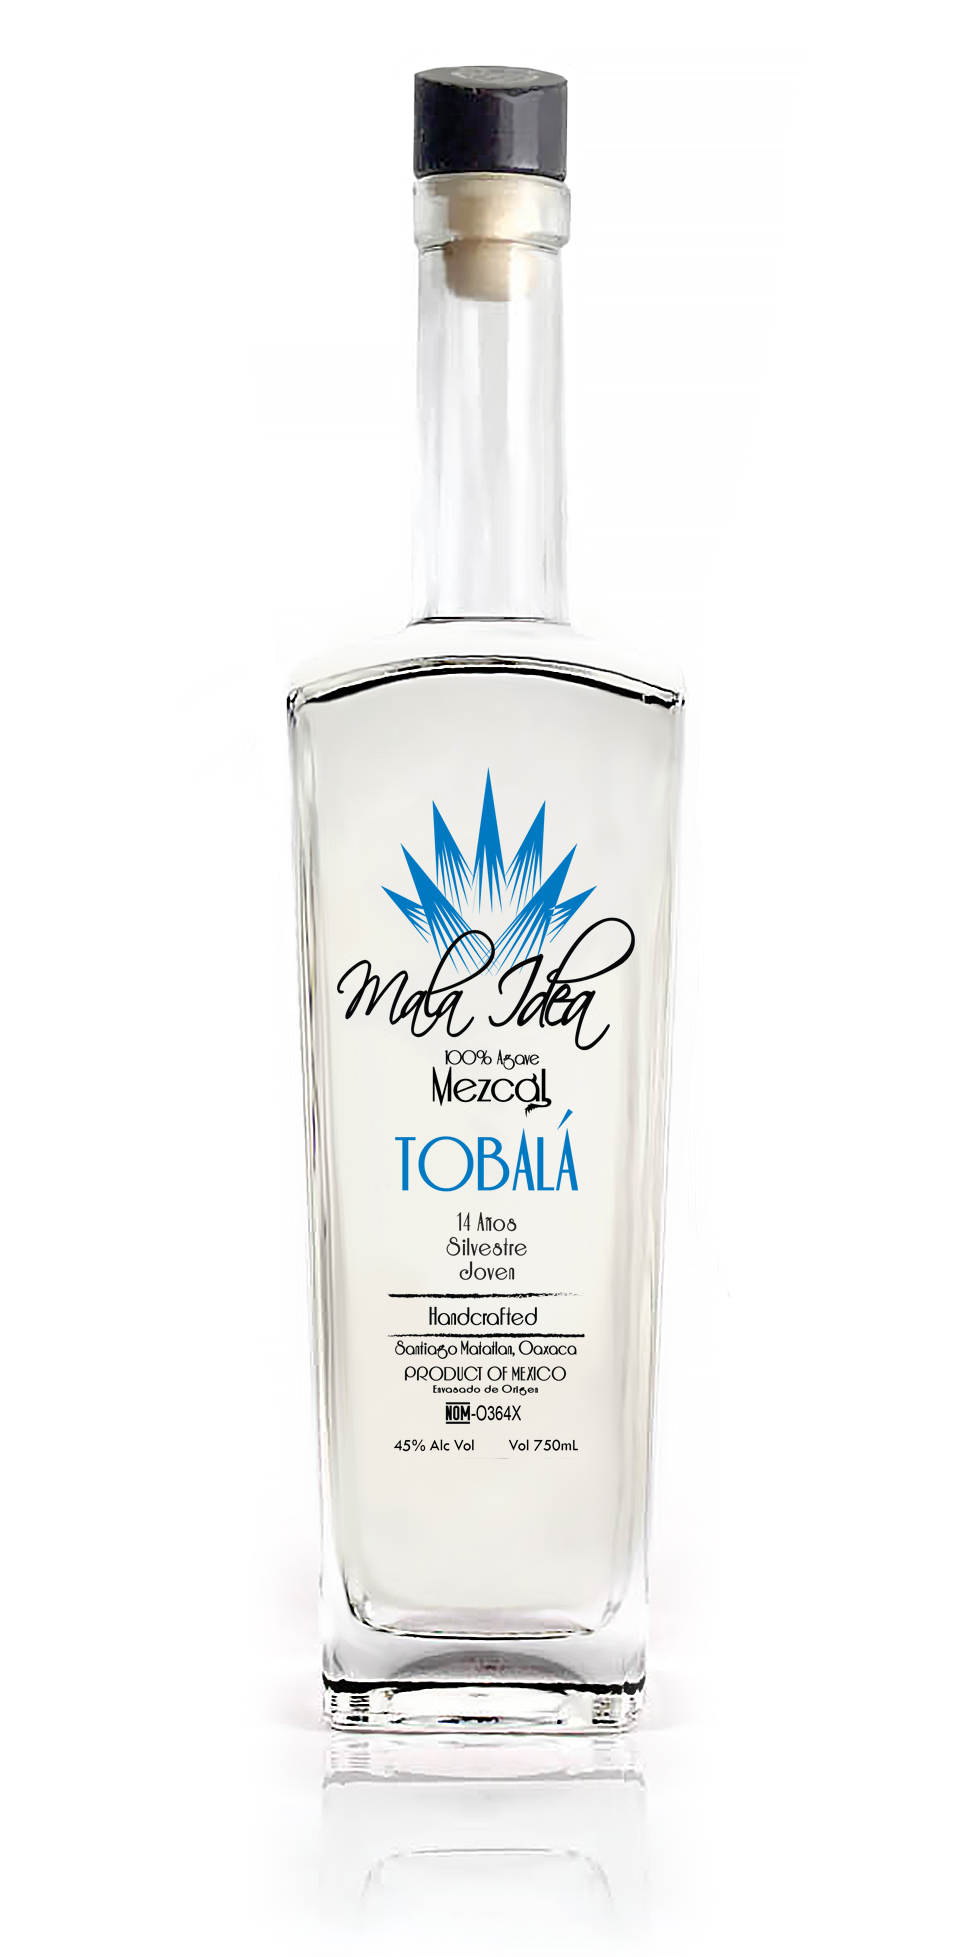 Mezcal Mala Idea Tobala 14 Years